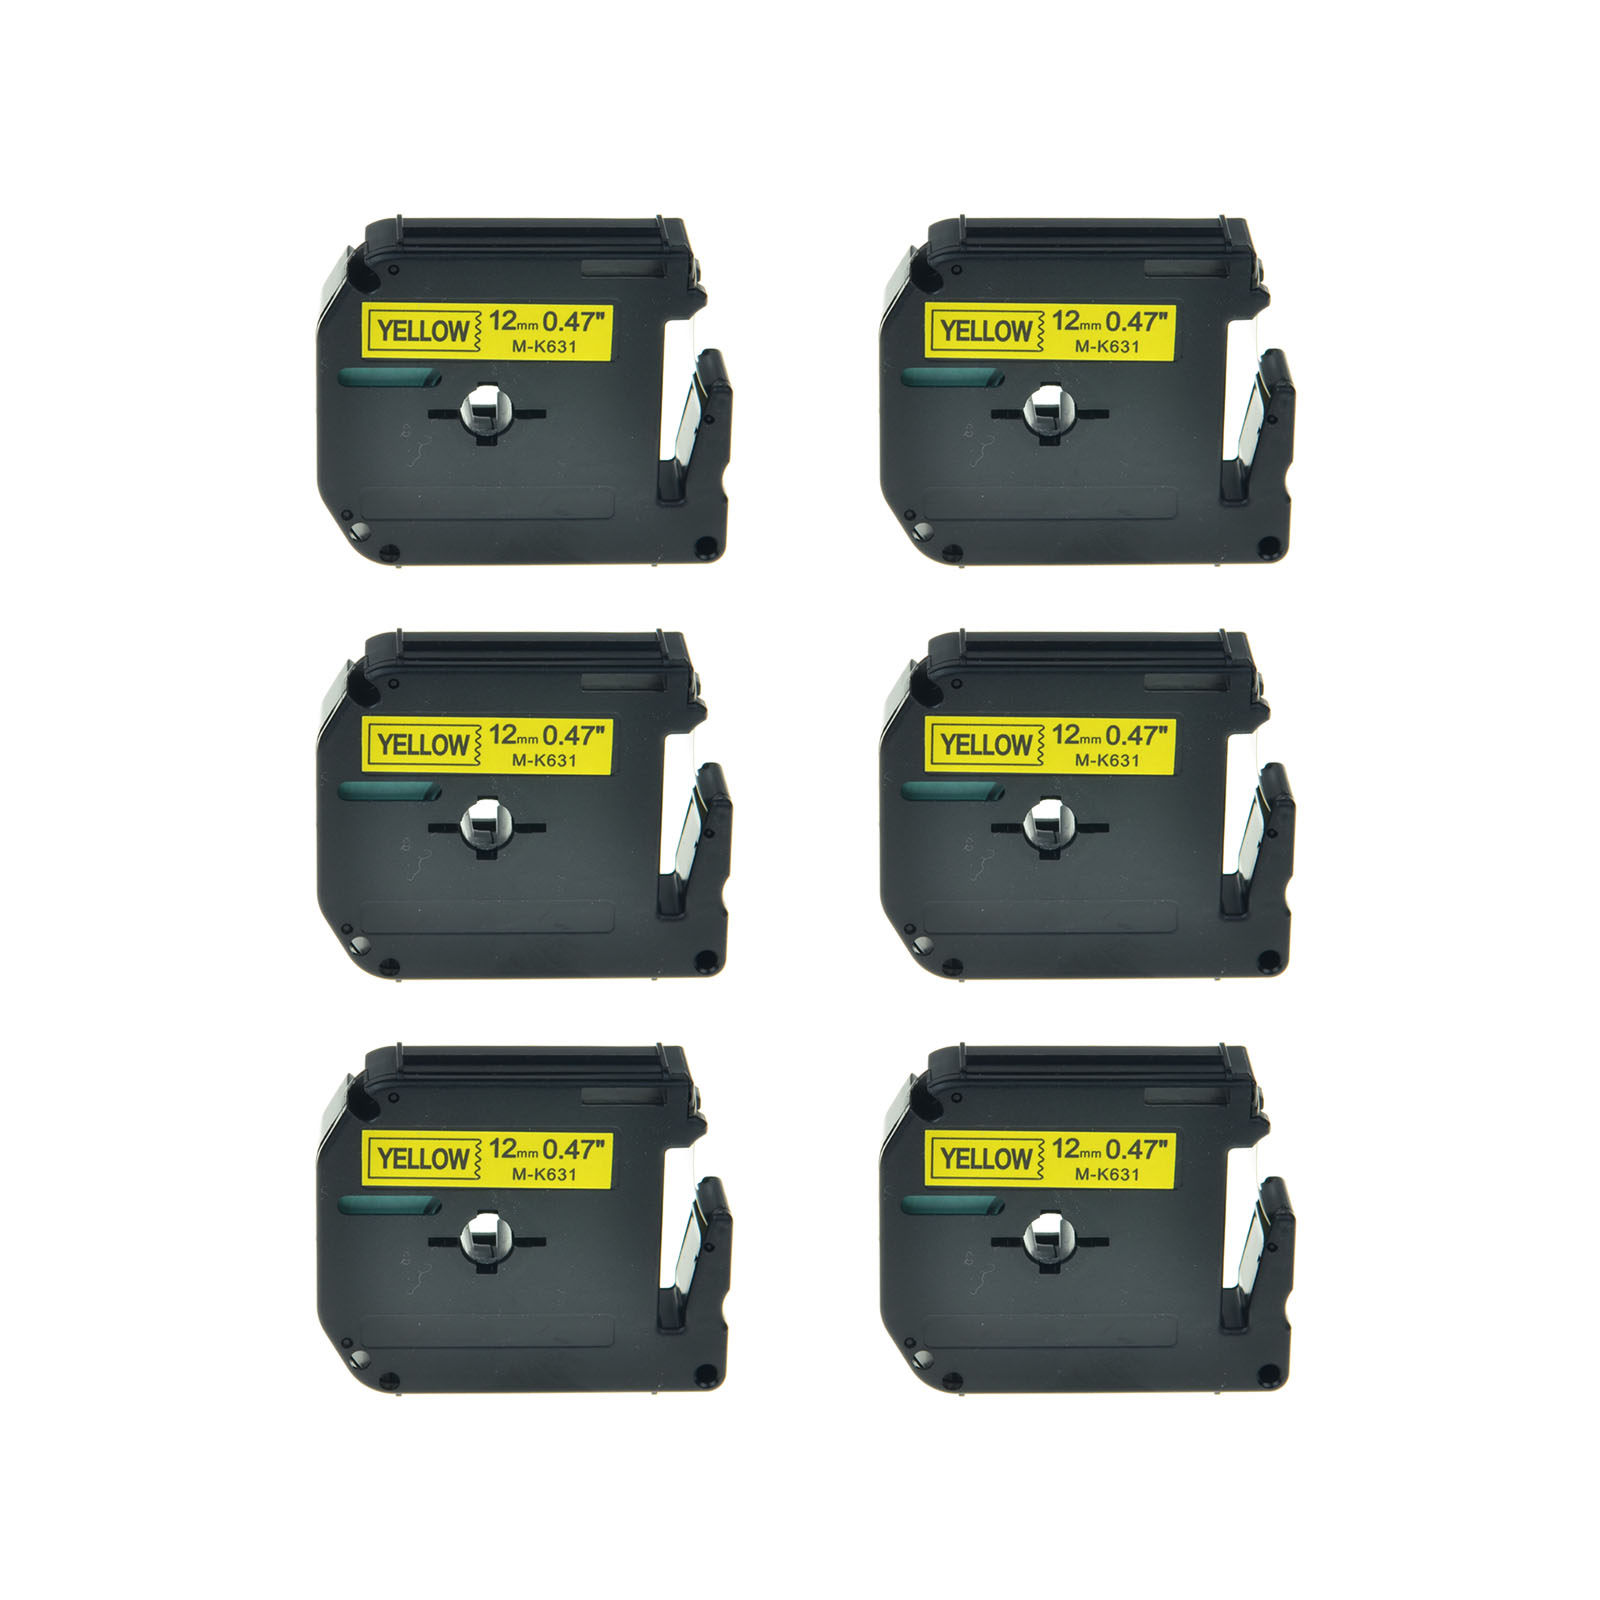 1PK Black on Yellow Tape for Brother P-touch MK631 M-K631 PT-90 12mm Label Maker